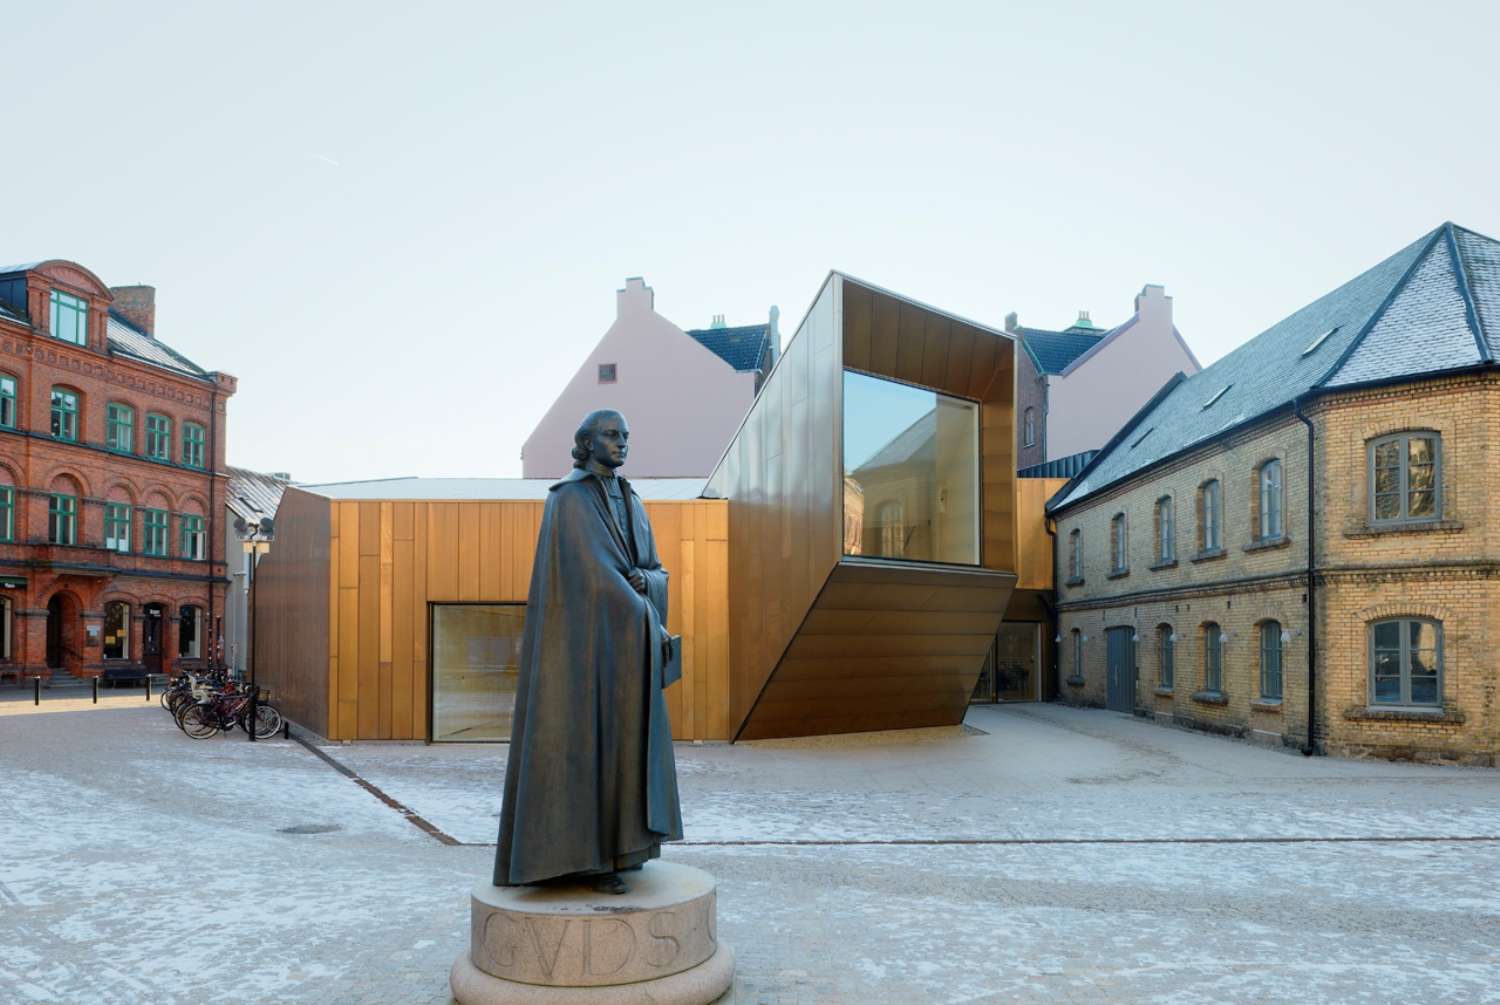 Domkyrkoforum located in Lund, Sweden. Front of the photo shows an erected dark grey statue. Behind the statue is a complex building clad from copper. The building is unorthodox. Building walls are clad form Nordic Copper by Aurubis. Background shows older cityscape buildings. It is daytime outside and the sky is grey.